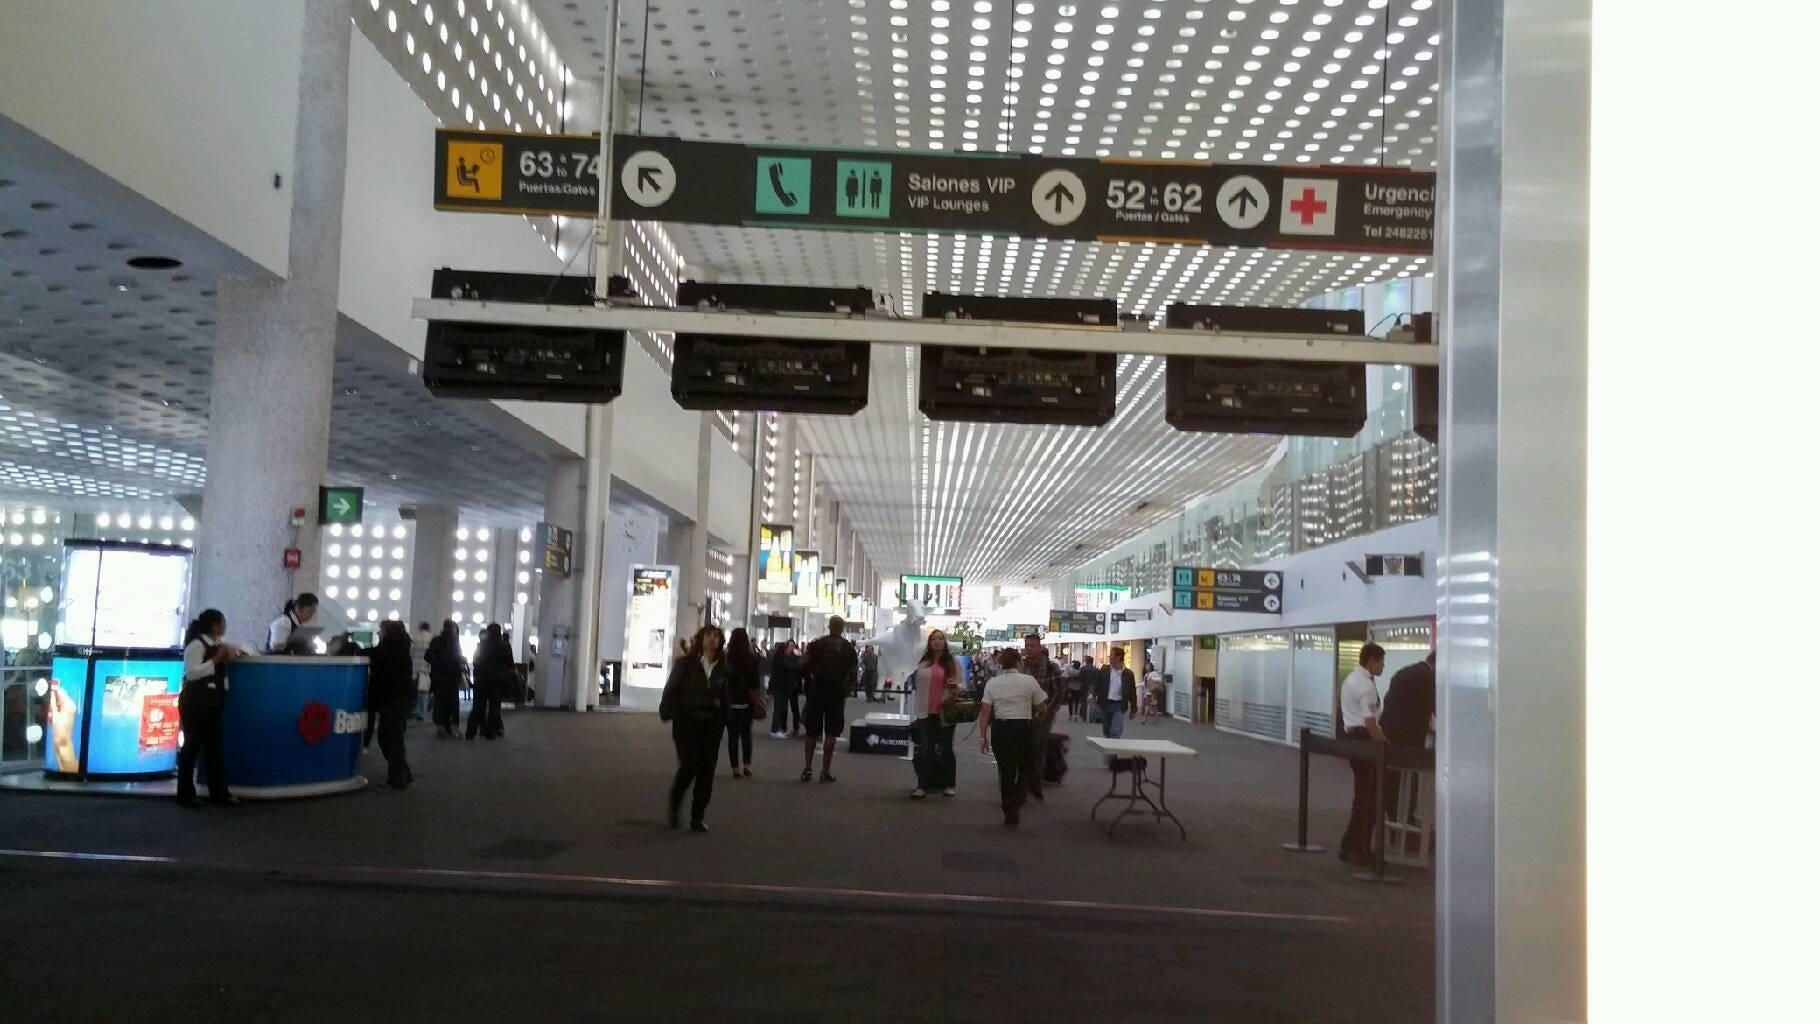 Benito Juárez international airport